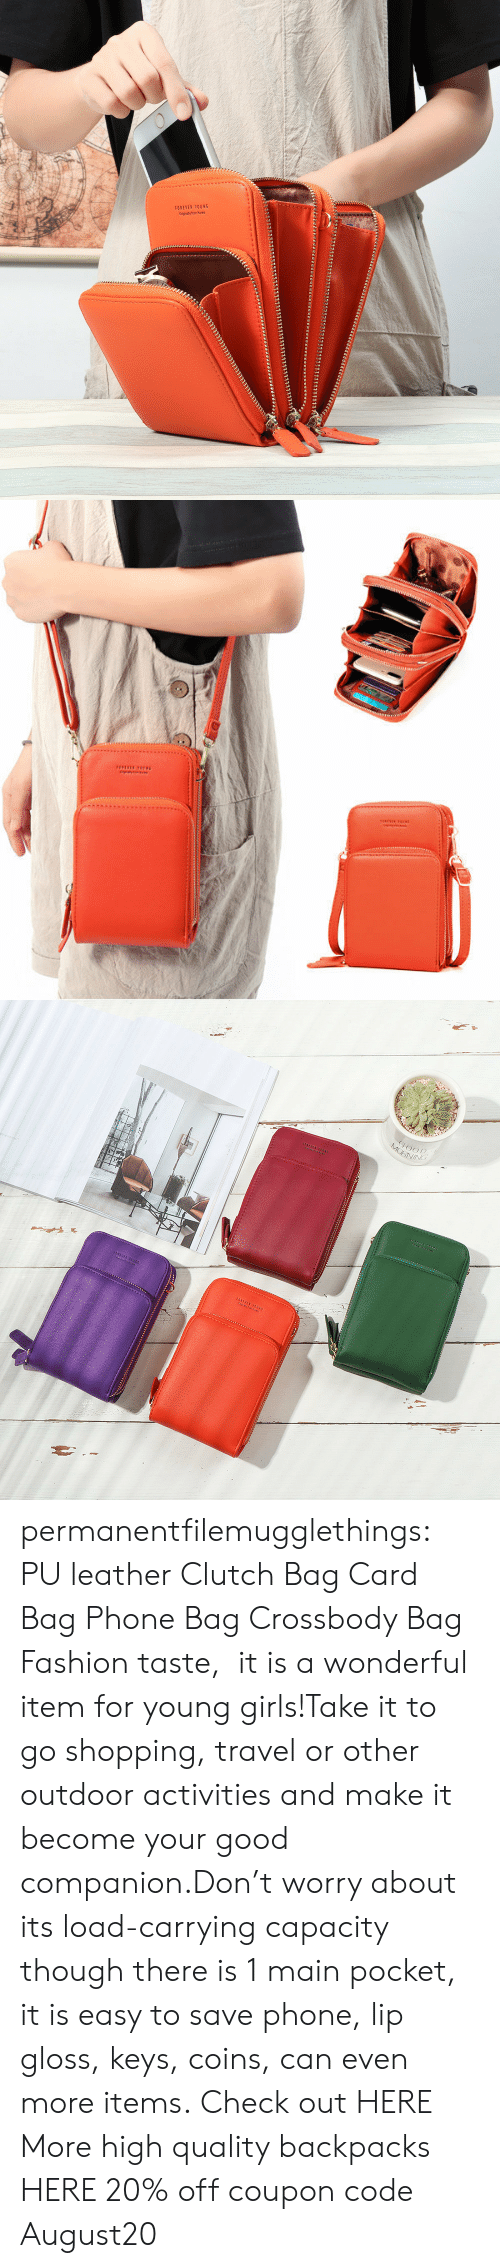 gloss: 1OREVER YOUN6  Orgnaly fom Kores   MOINING permanentfilemugglethings: PU leather Clutch Bag Card Bag Phone Bag Crossbody Bag Fashion taste, it is a wonderful item for young girls!Take it to go shopping, travel or other outdoor activities and make it become your good companion.Don't worry about its load-carrying capacity though there is 1 main pocket, it is easy to save phone, lip gloss, keys, coins, can even more items. Check out HERE More high quality backpacks HERE  20% off coupon code:August20